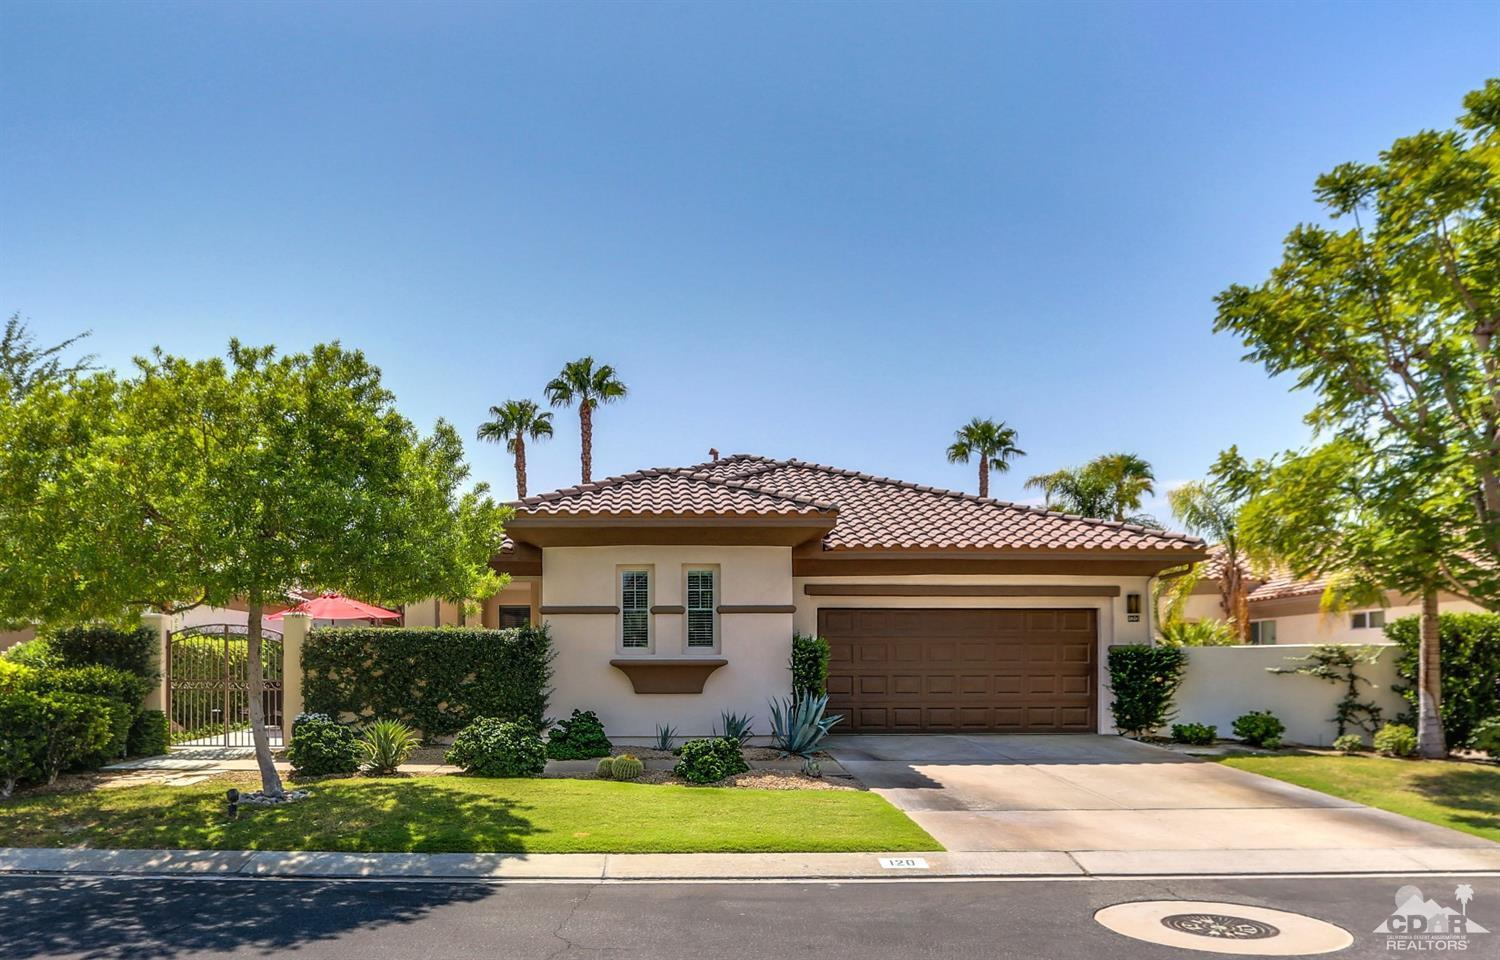 120 Mission Lake Way, Rancho Mirage